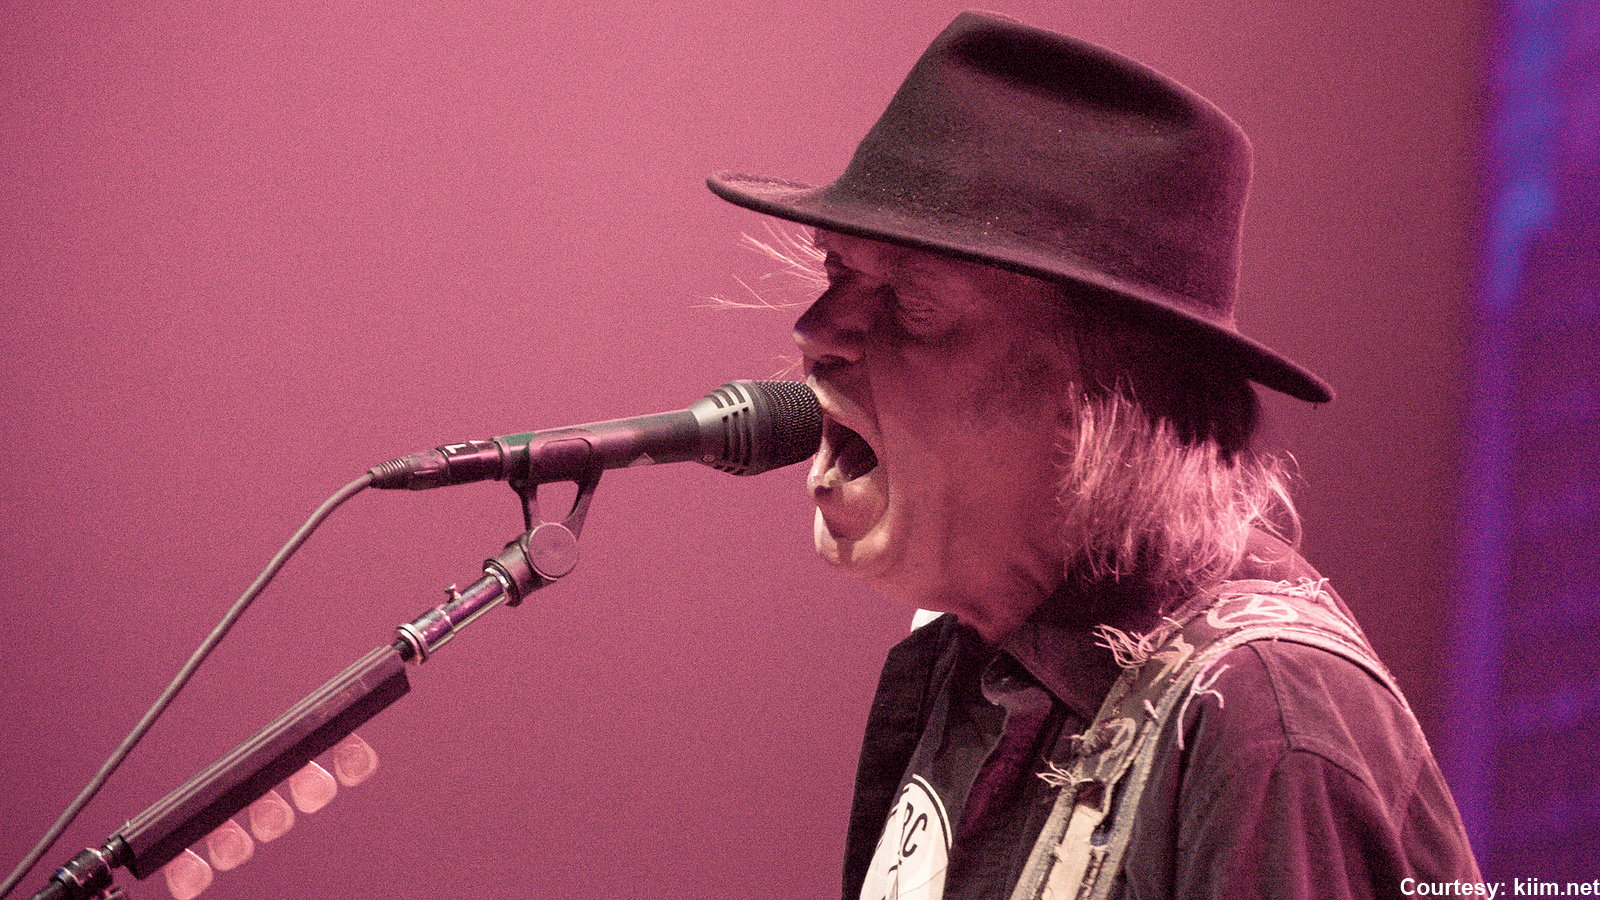 neil-young-country-girl-meaning